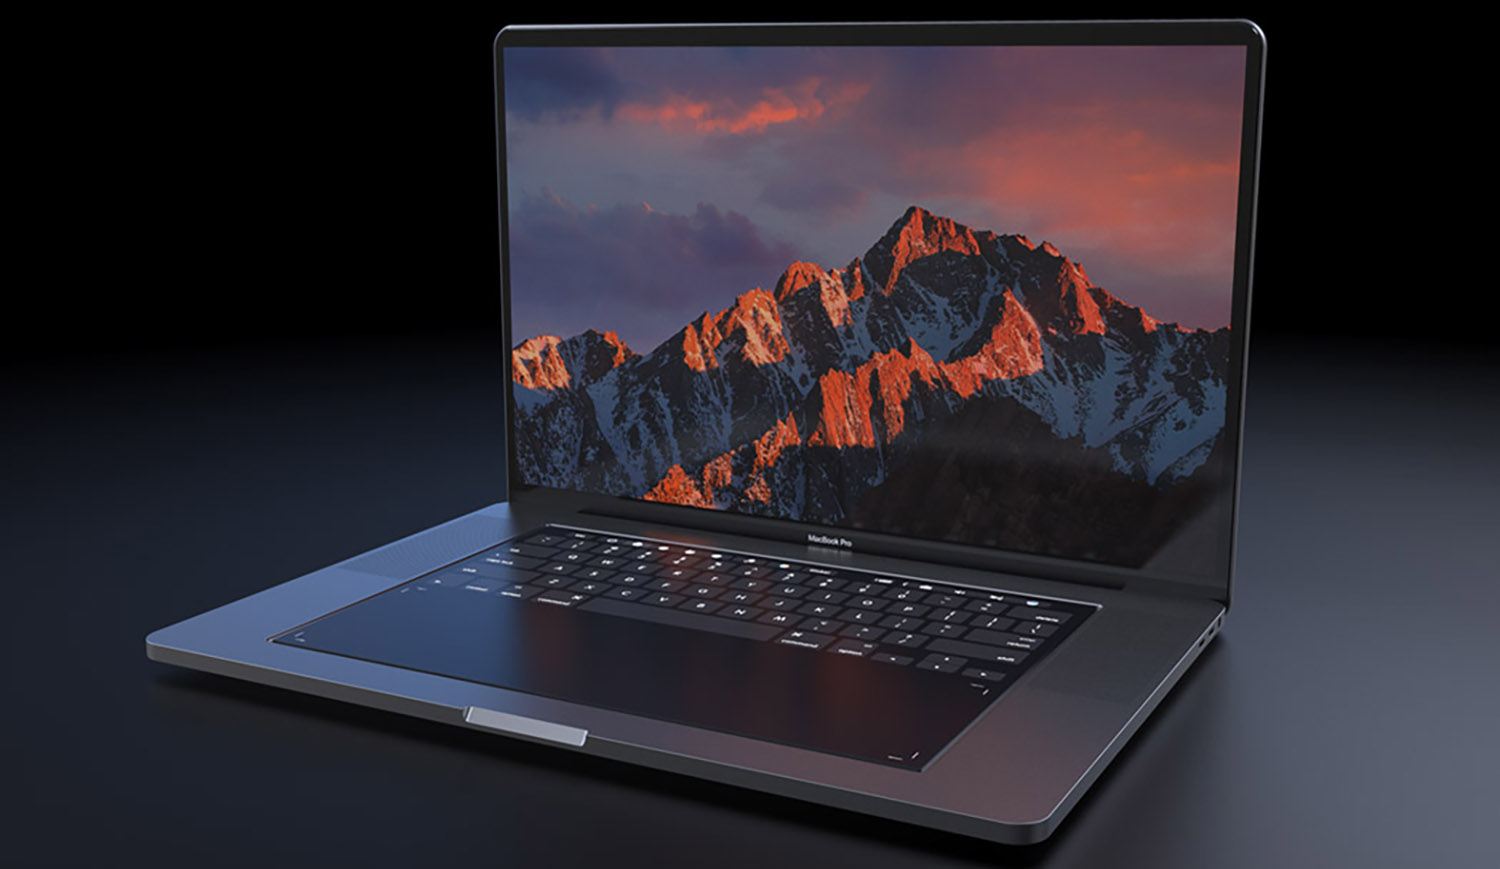 New Macbook 2020.New Macbook With Scissor Keyboard Launching In Mid 2020 Report